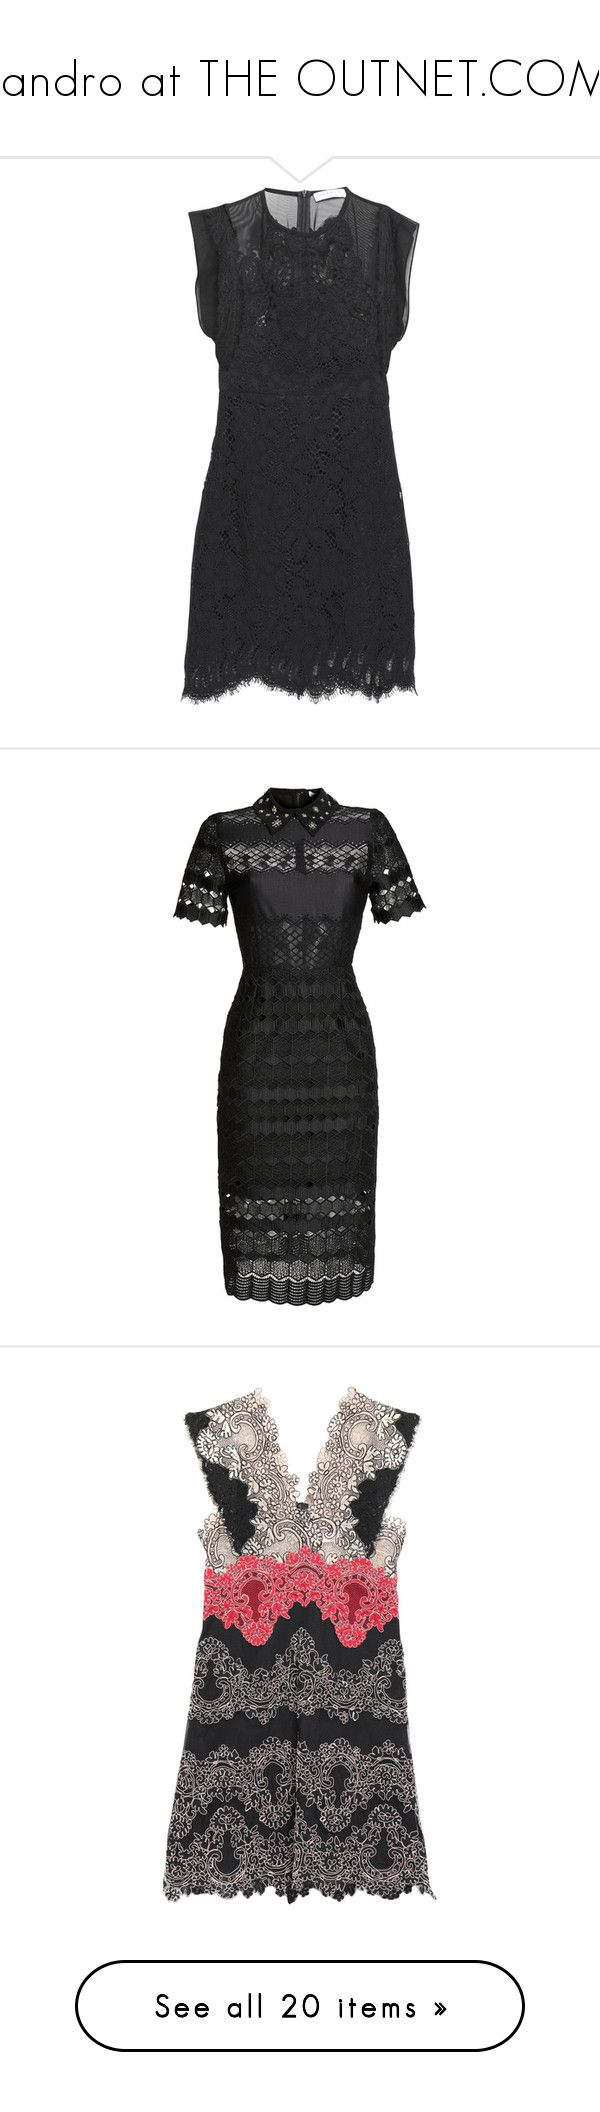 """""""Sandro at THE OUTNET.COM!"""" by theoutnet ❤ liked on Polyvore featuring dresses, black, panel dress, lace panel dress, slimming dresses, lacy dress, short lace dress, macrame dress, cutout dresses and embellished dress"""